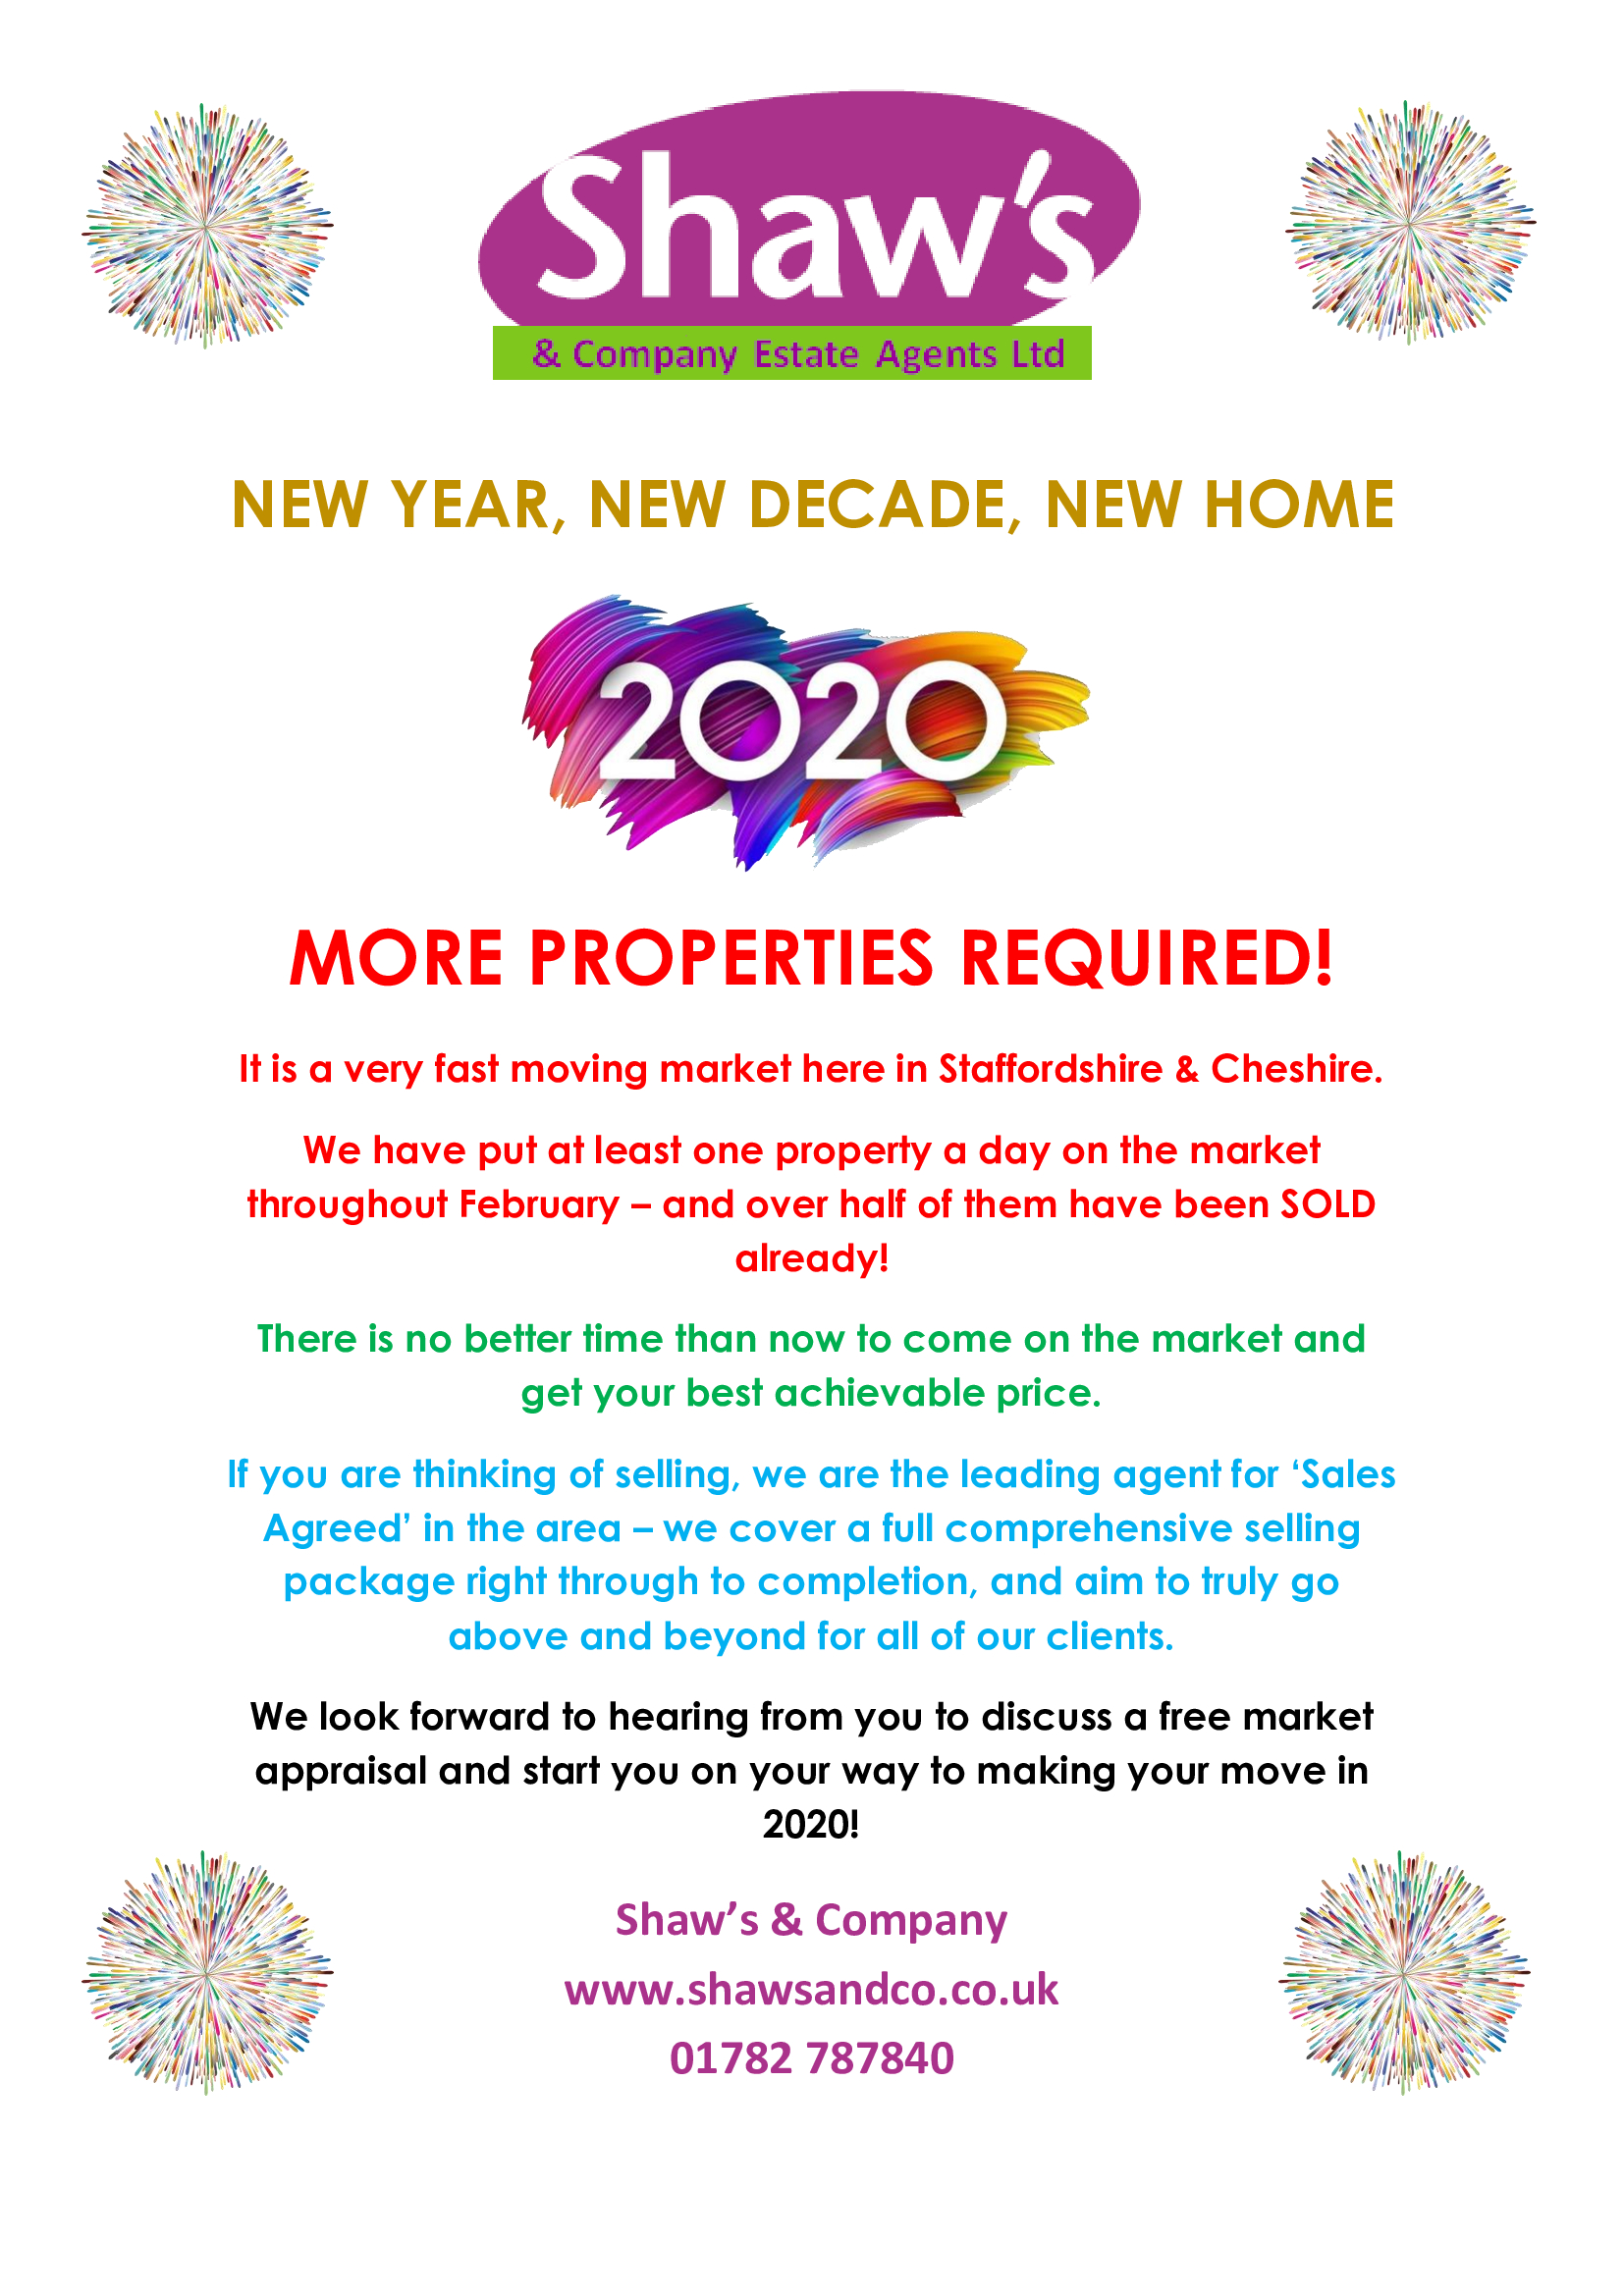 MORE PROPERTIES REQUIRED TO SELL!